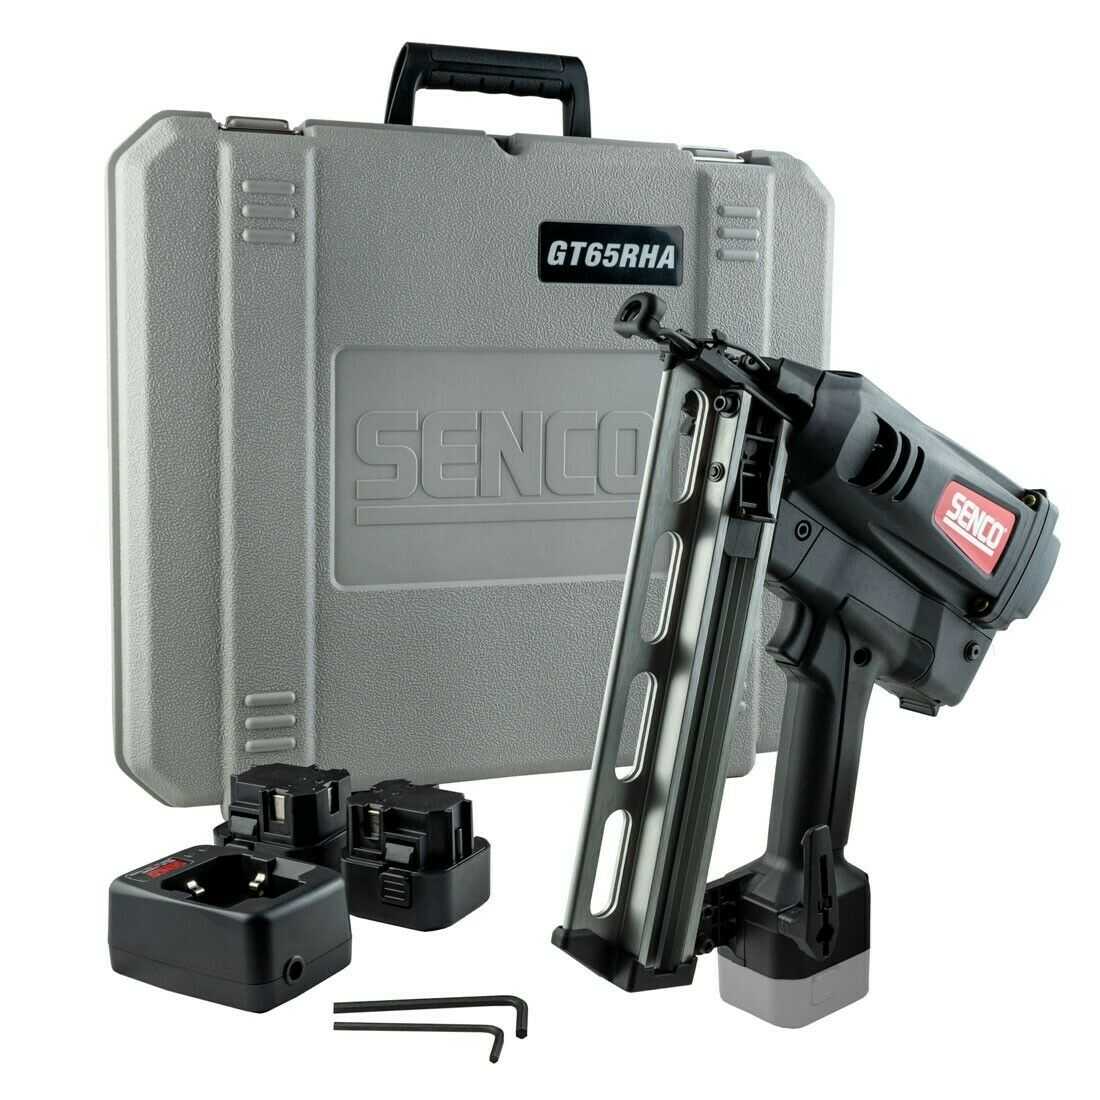 Senco 16g Second Fix Straight Nailer GT65 2 x Batteries + Charger - Fires 16g